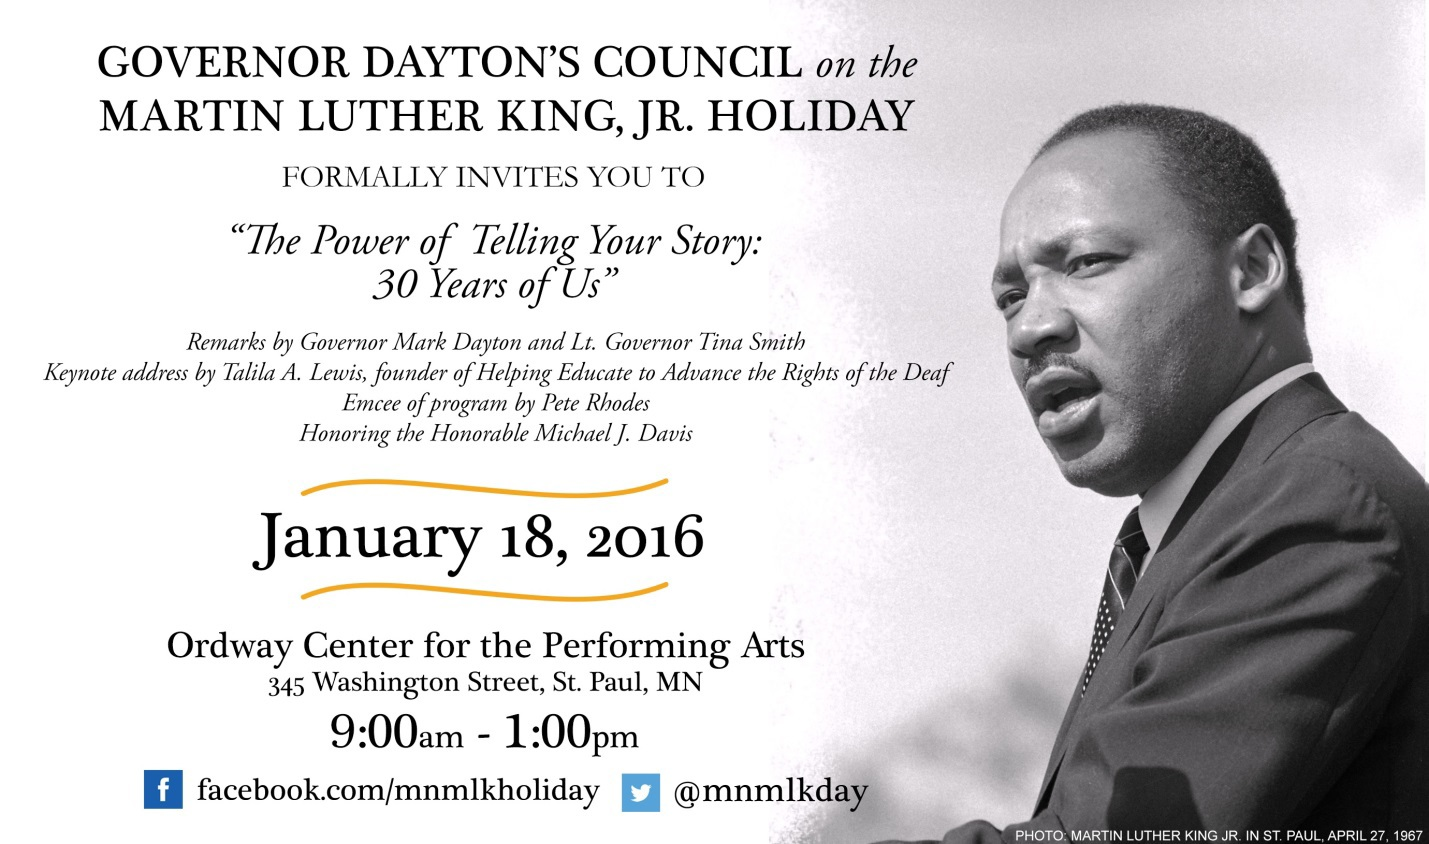 MLK Day: The Power of Telling Your Story: 30 Years of Us